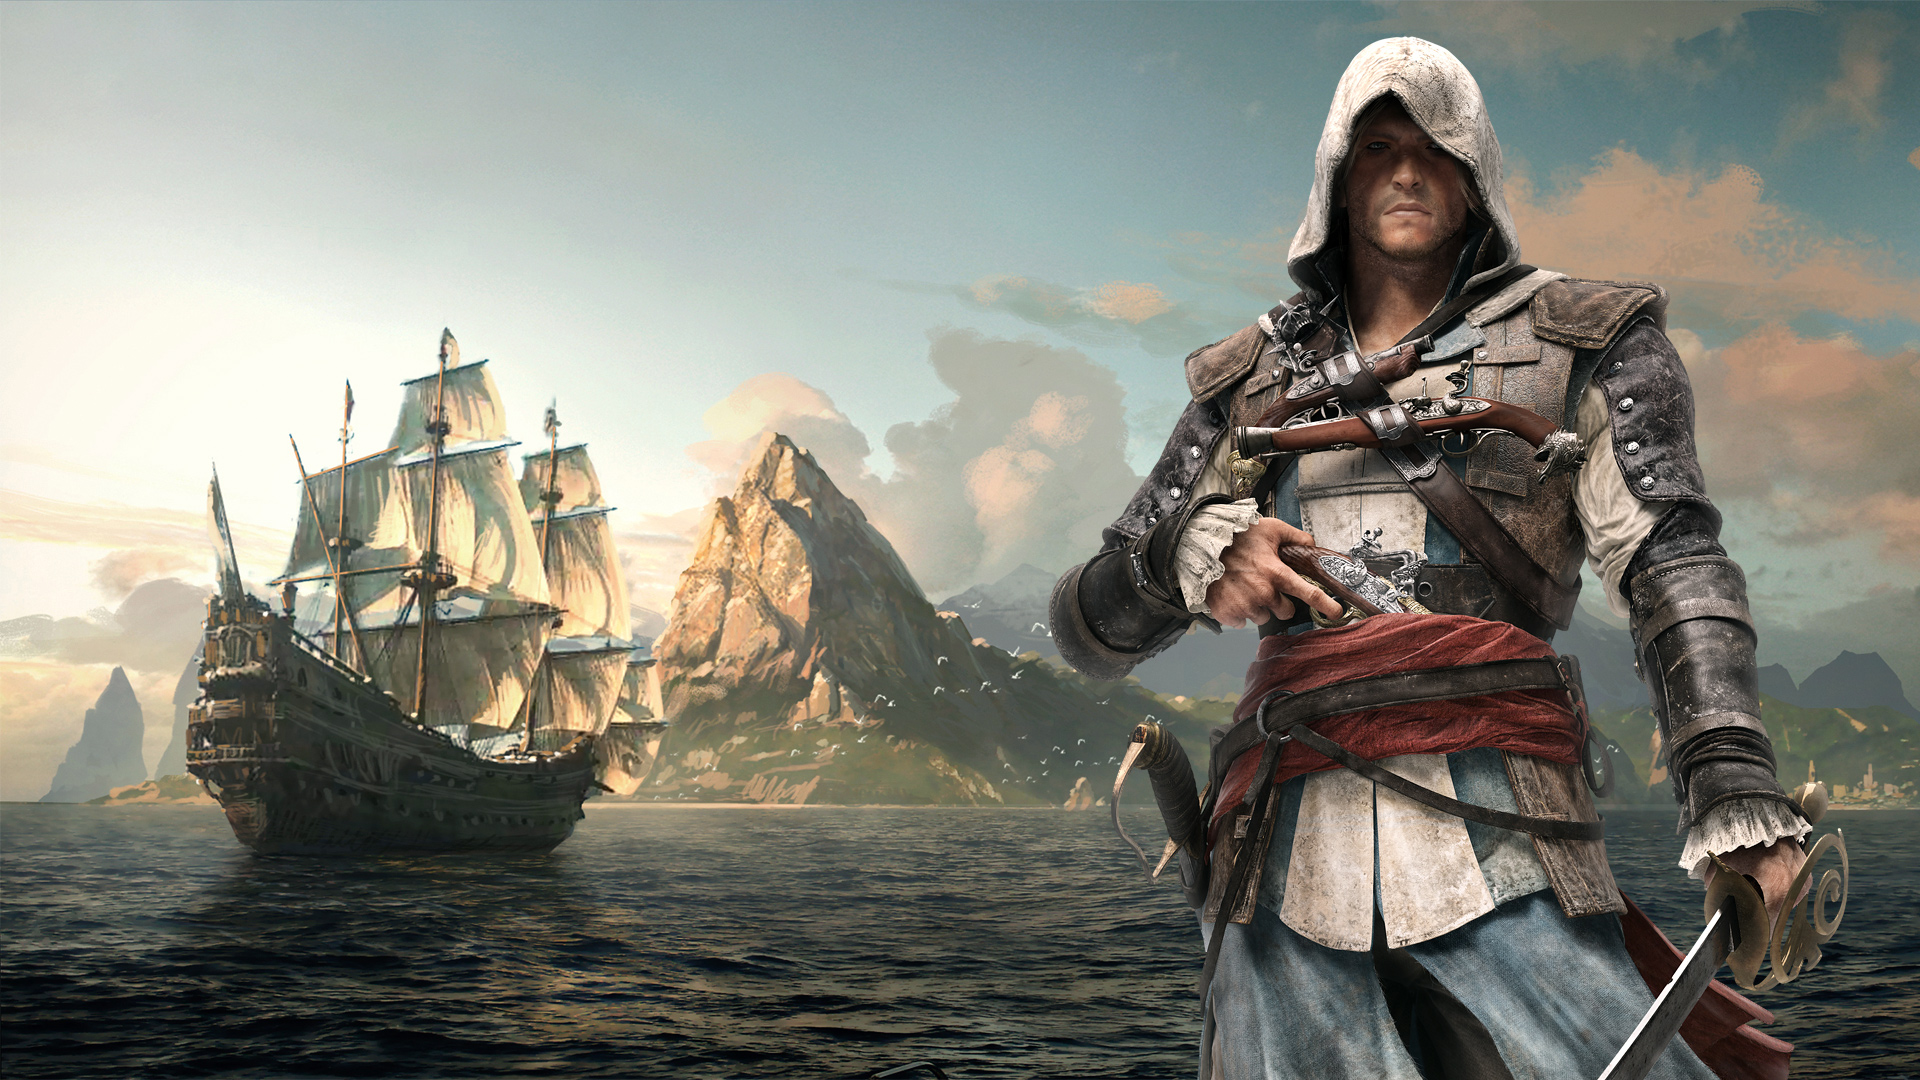 Ou trouver des figurines pirate pas très chère ? Assassins-creed-iv-black-flag-image-large-2657